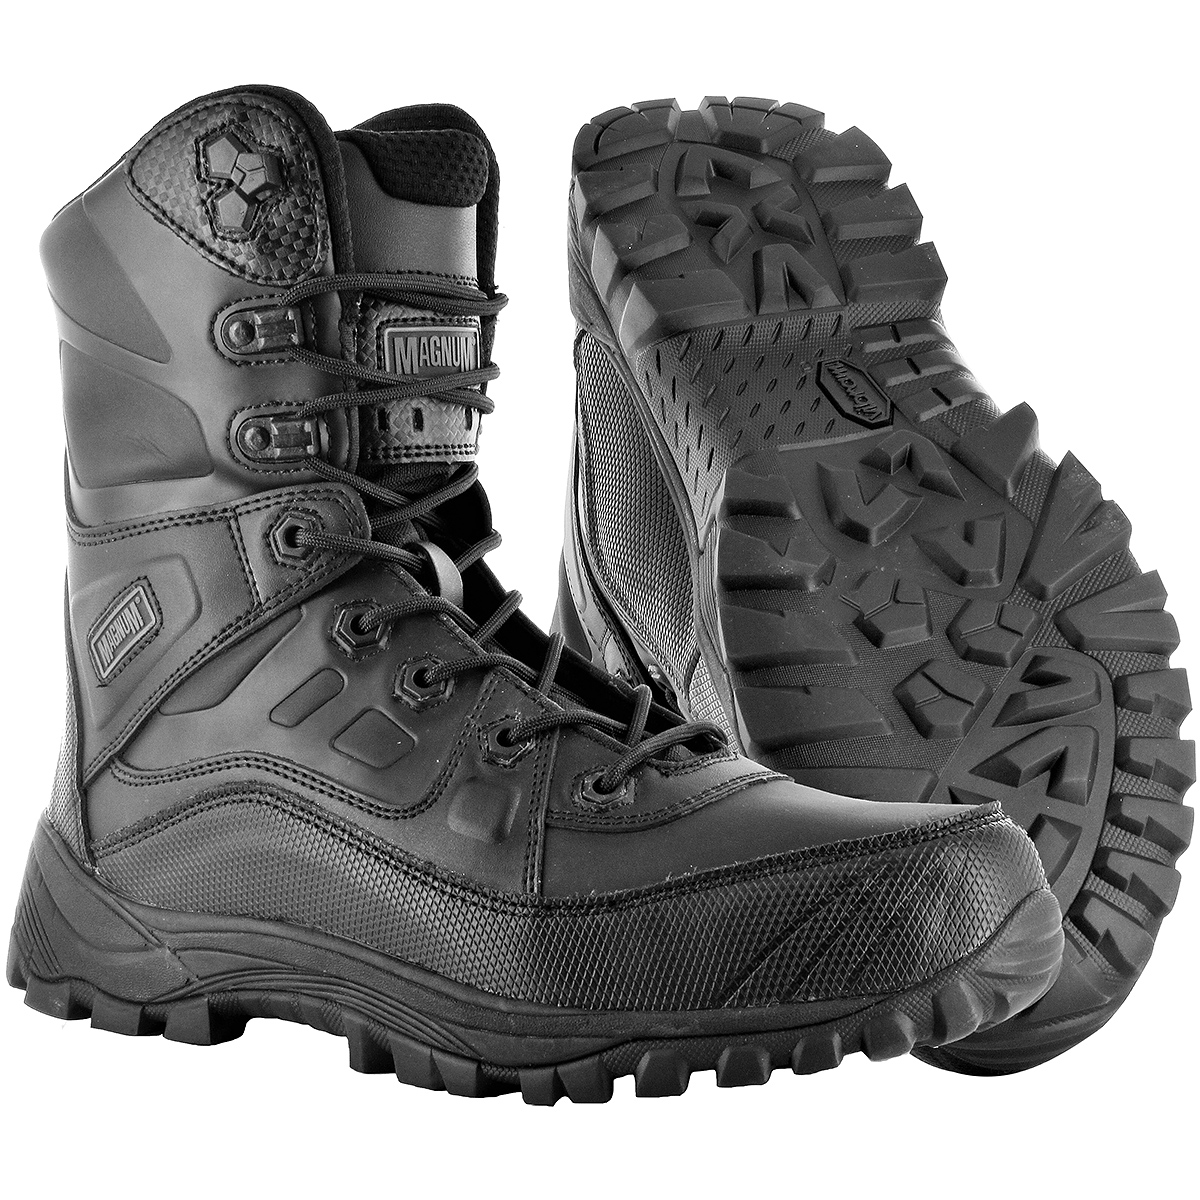 Magnum police boots